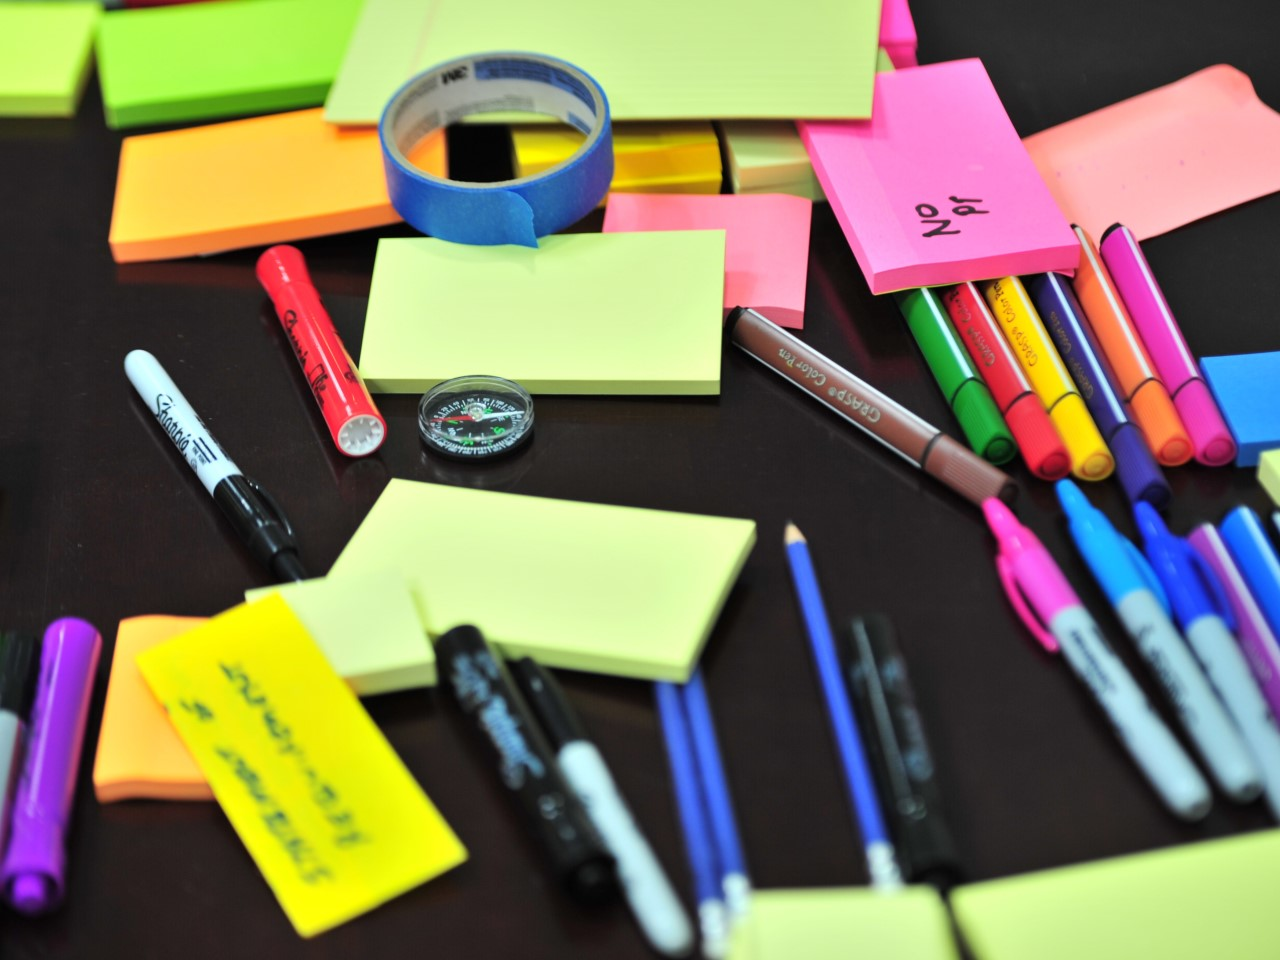 Tools for getting creative